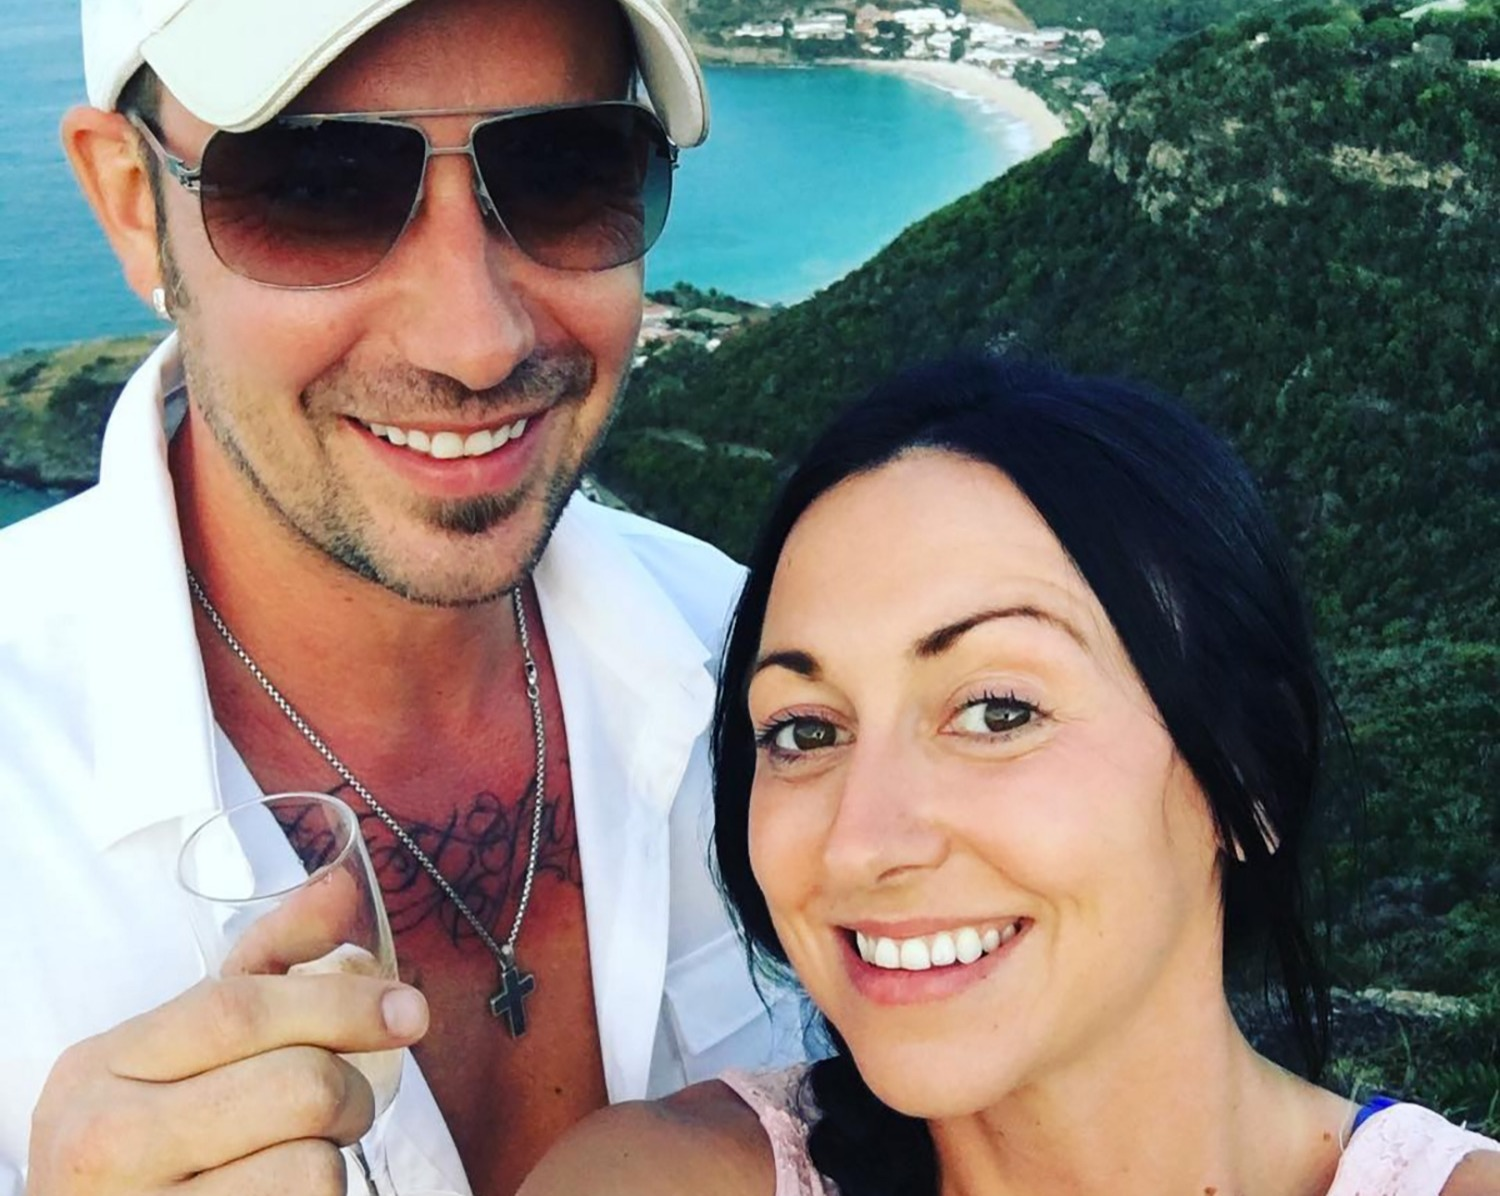 Jeremy Bieber is with his fiance Chelsea Rebelo. They both are smiling. Jeremy is holding a glass.